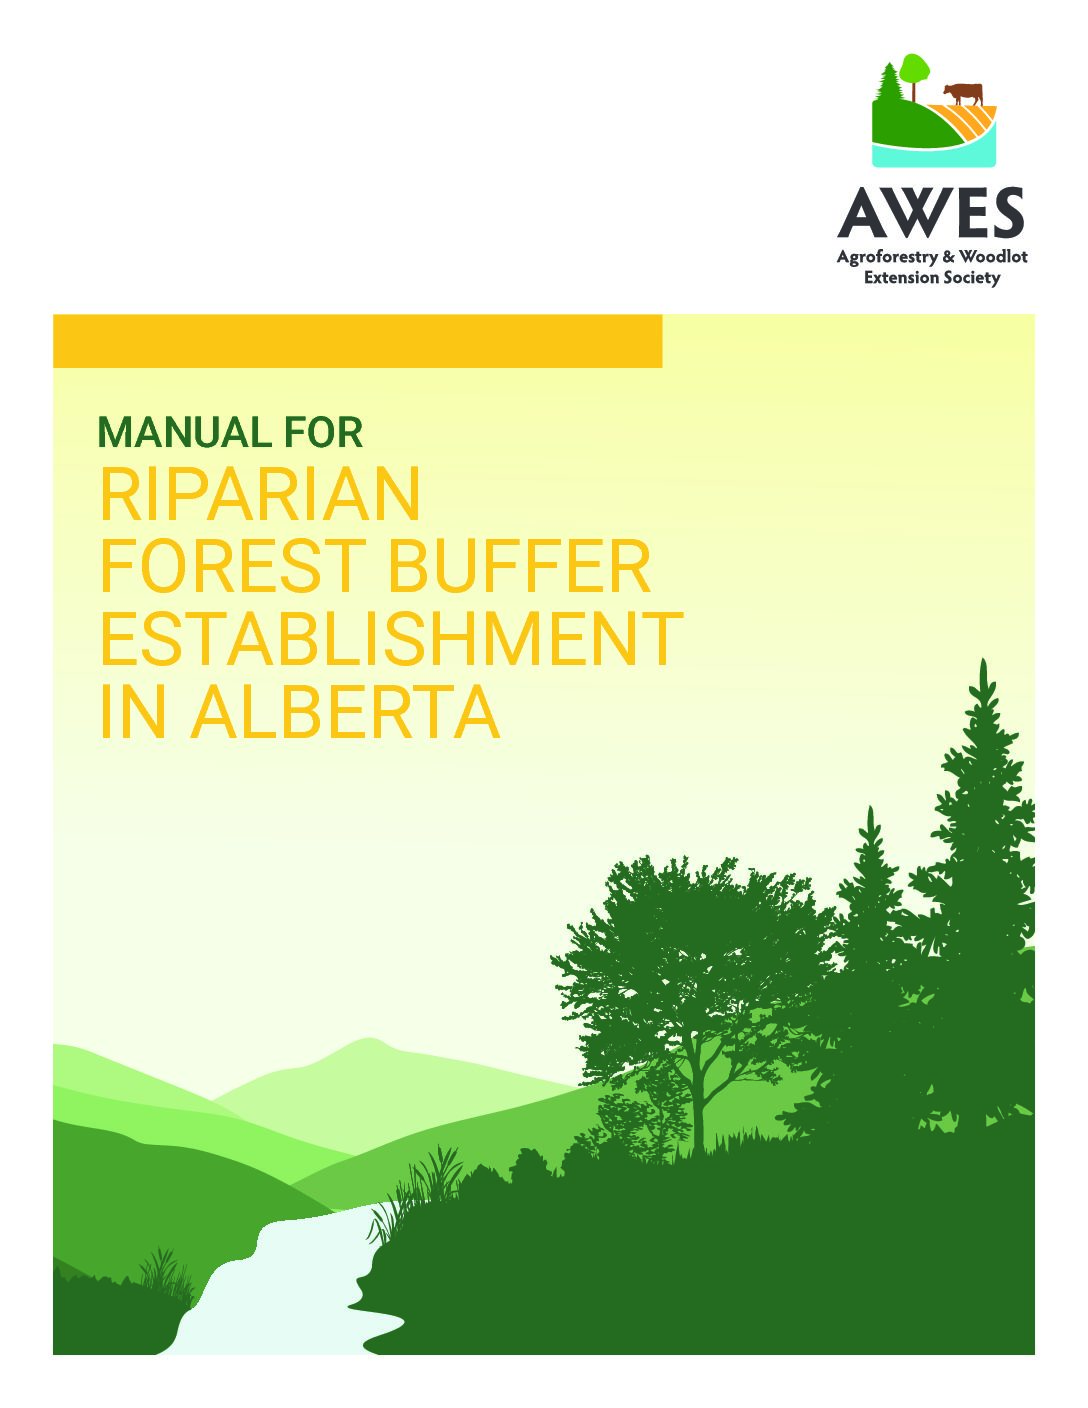 Manual for Riparian Forest Buffer Establishment in Alberta